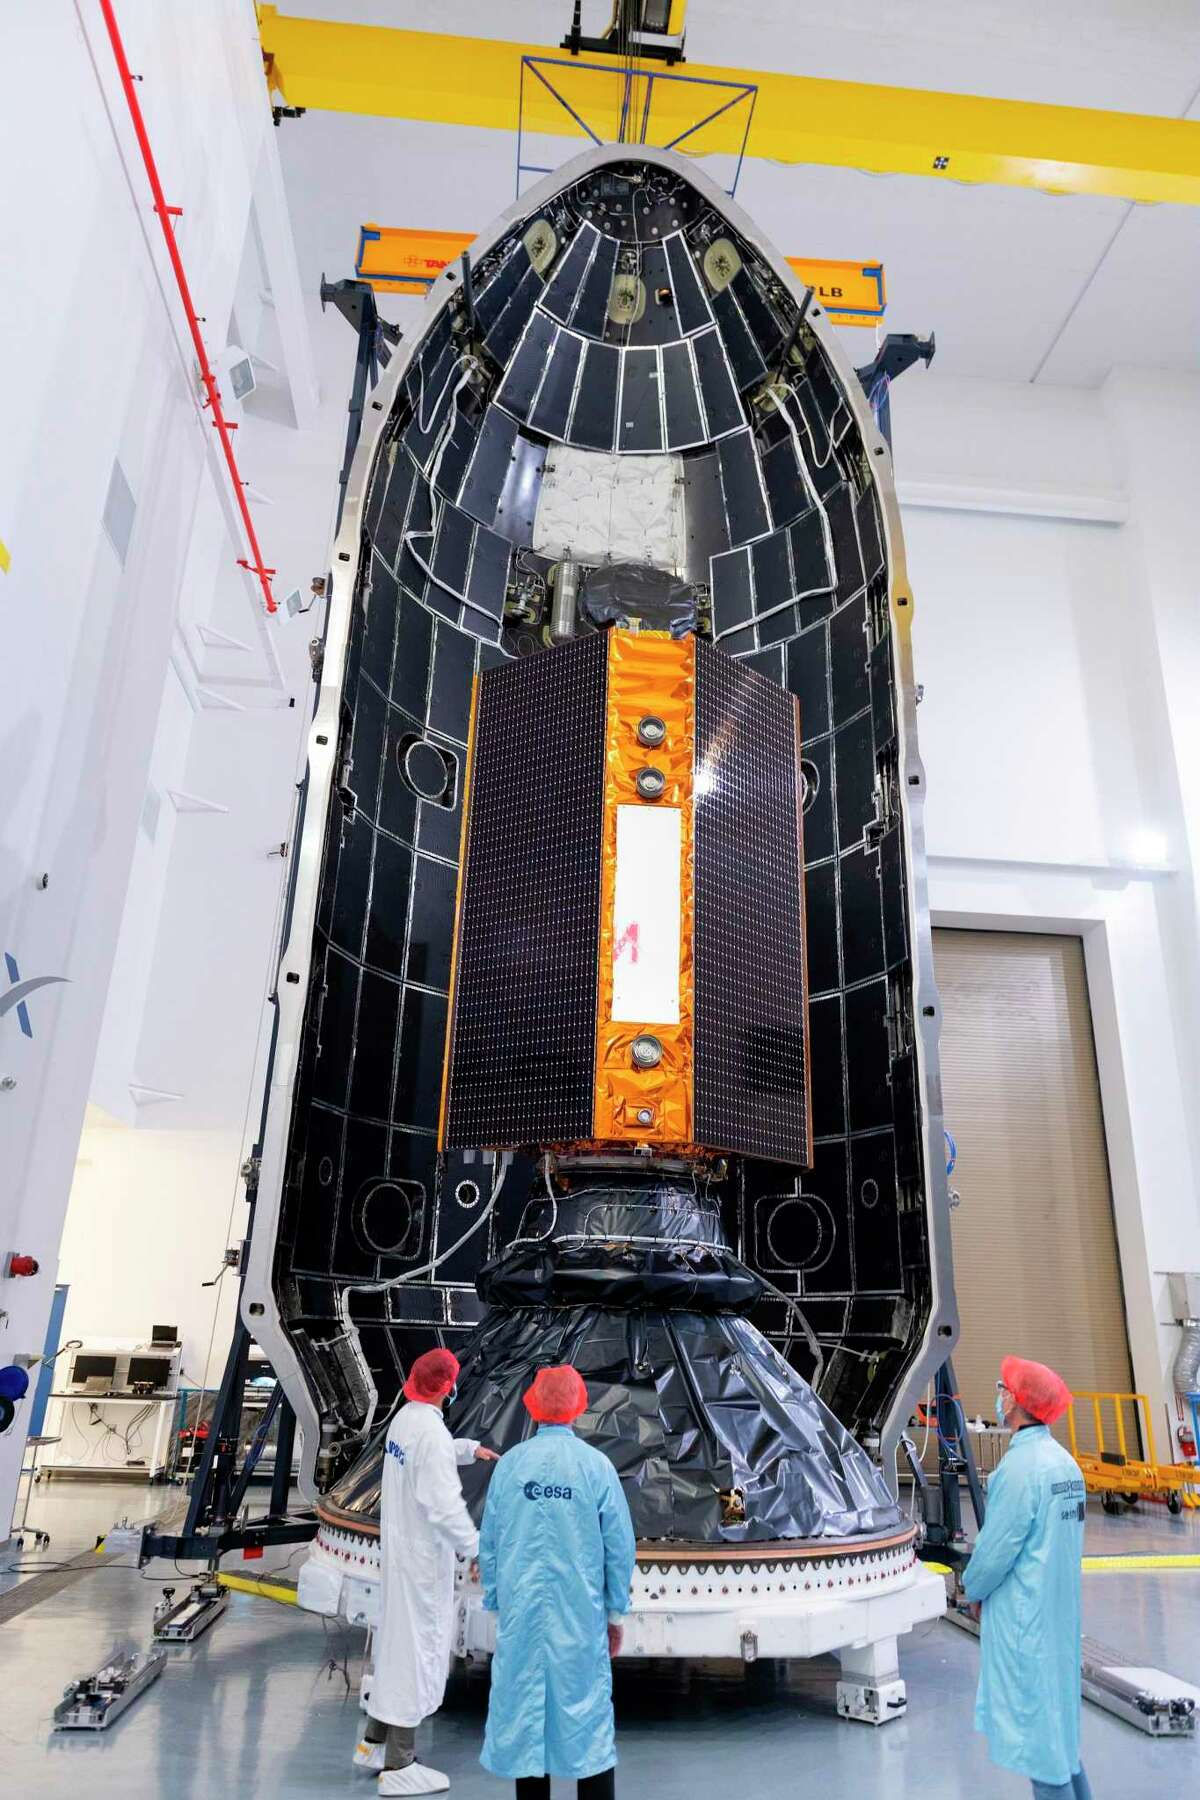 In this Nov. 3, 2020 photo, provided by the European Space Agency, the Sentinel-6 Michael Freilich satellite is placed inside the upper stage of a Falcon 9 rocket. The joint European-U.S. satellite mission to improve measurements of sea level rise was launched from Vandenberg Air Force Base in California on Saturday Nov. 21, 2020. The Sentinel-6 Michael Freilich satellite, named after the late director of NASA's Earth Science Division, is seen as a crucial tool for monitoring the impact of global warming on coastlines, where billions of people face the risk of encroaching oceans in the coming decades. (ESA/Stephane Corvaja via AP)